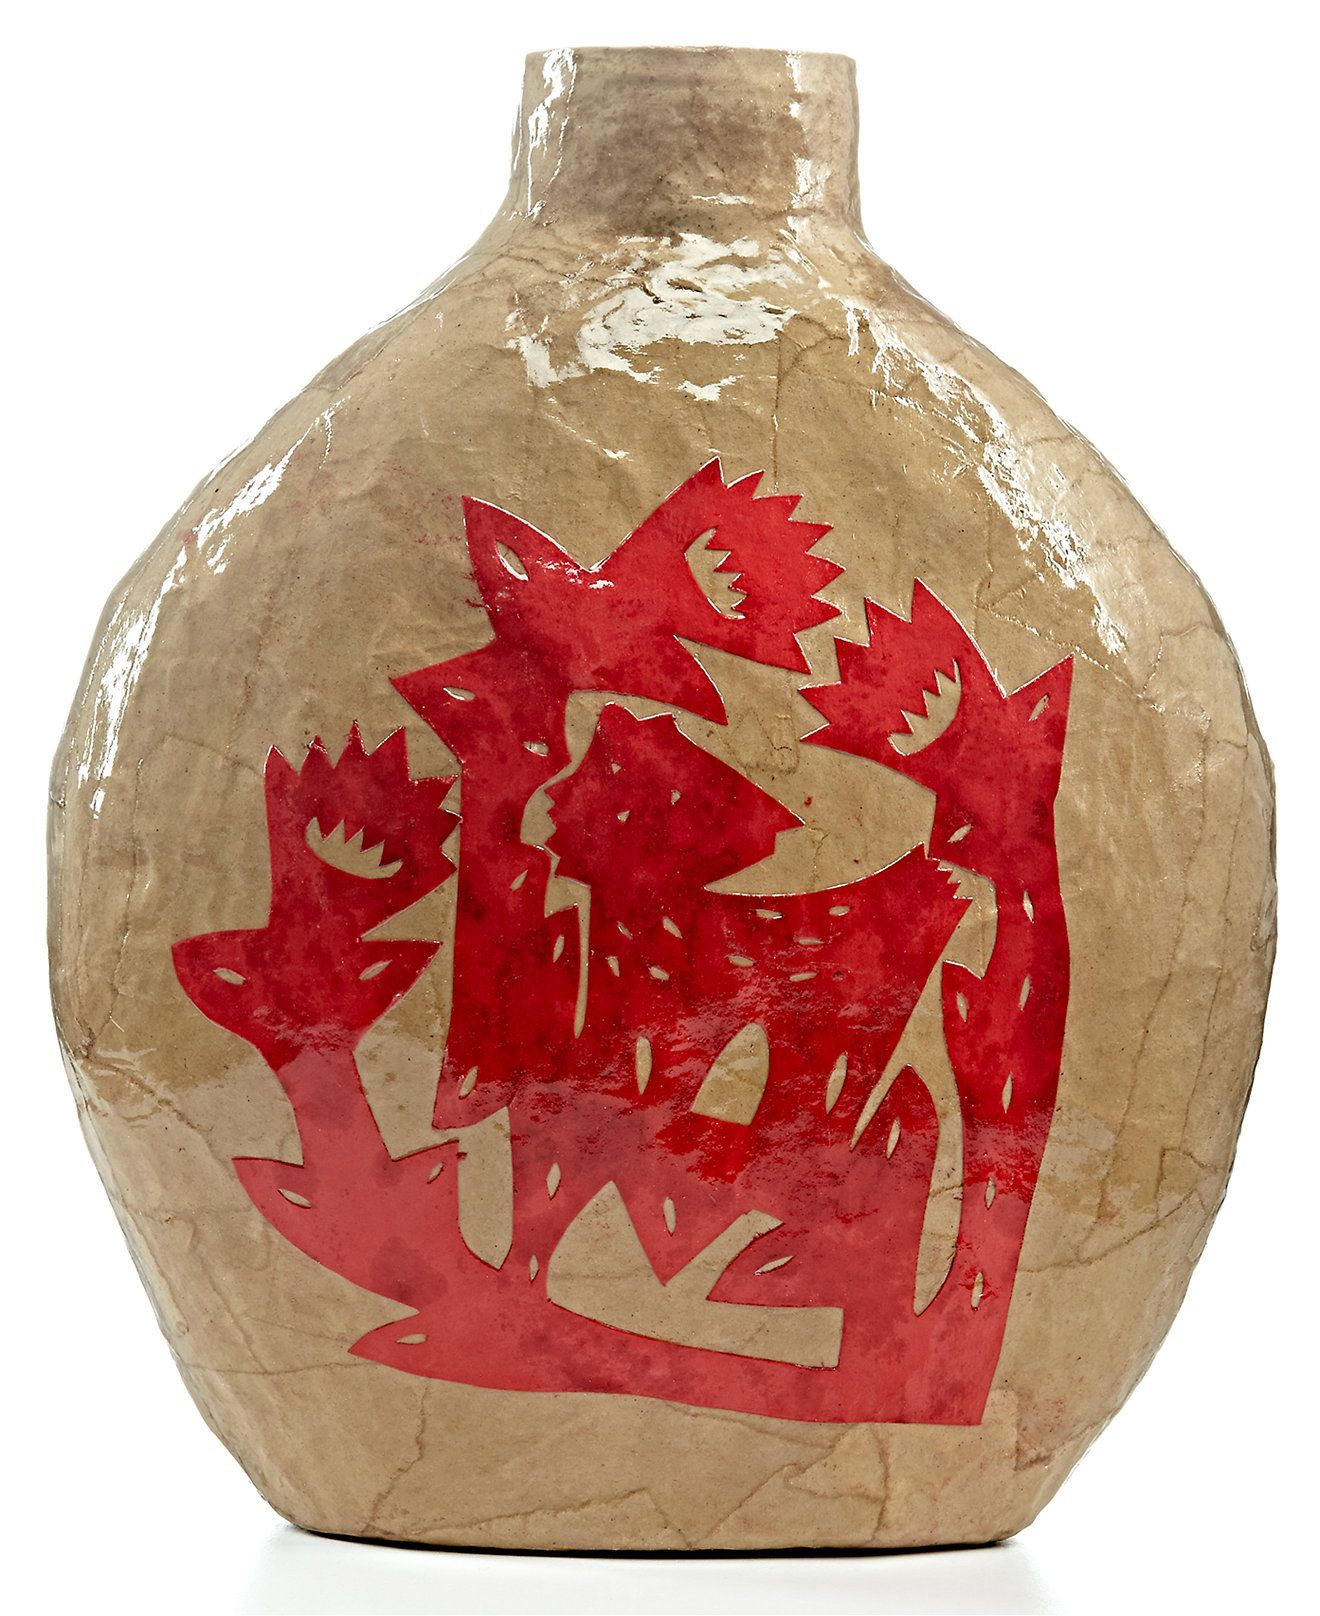 Heart of haiti brown papier mache vase with red stencil cutout heart of haiti brown papier mache vase with red stencil cutout collections for the reviewsmspy